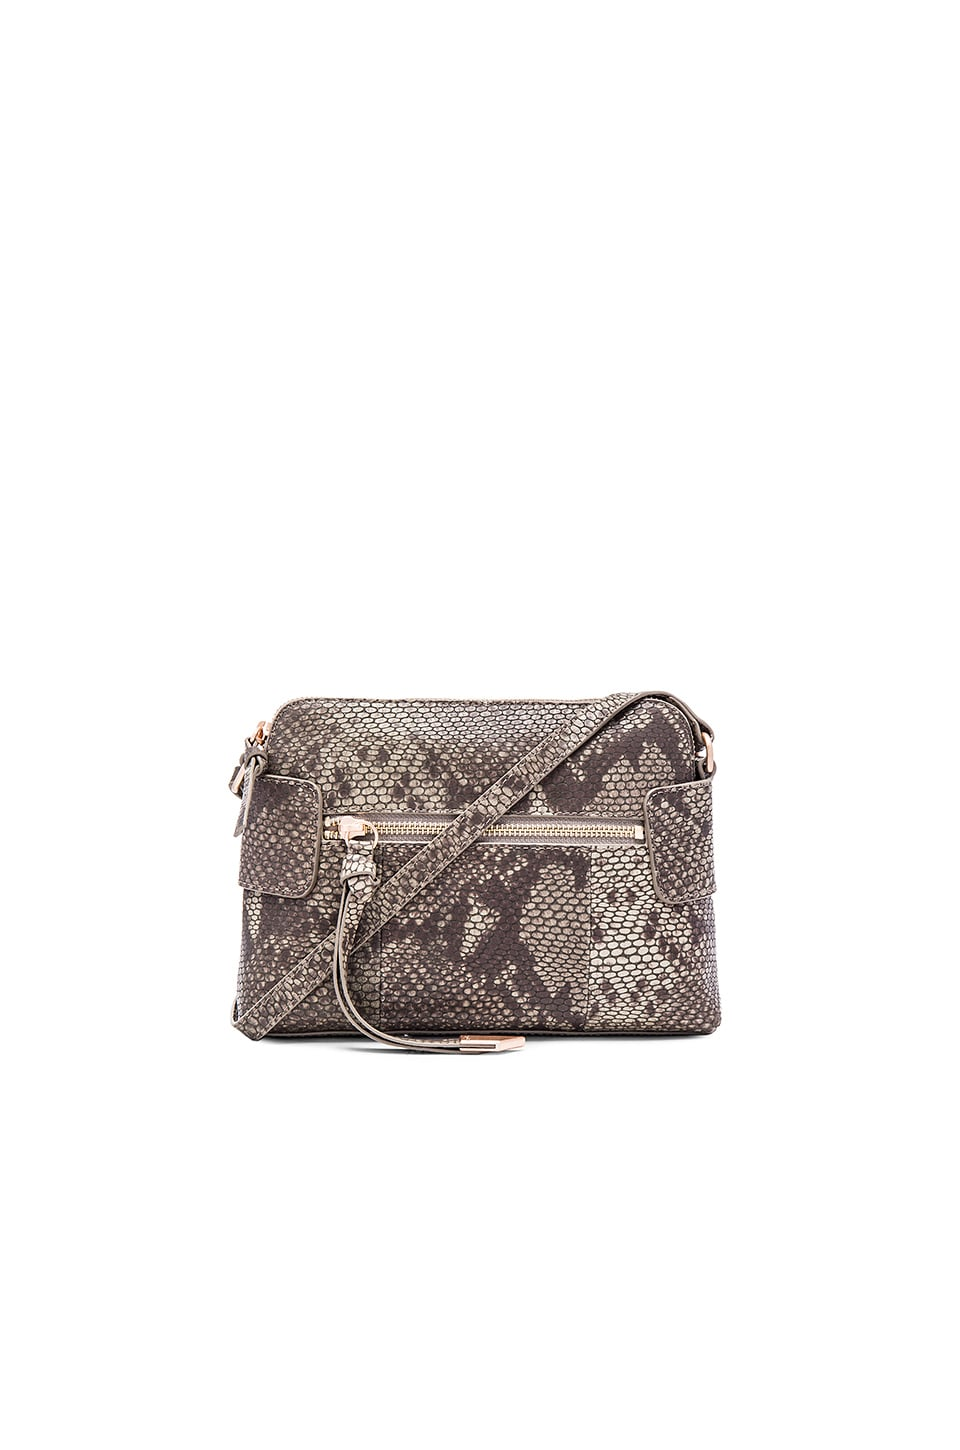 Foley + Corinna Emma Crossbody Bag in Safari Snake